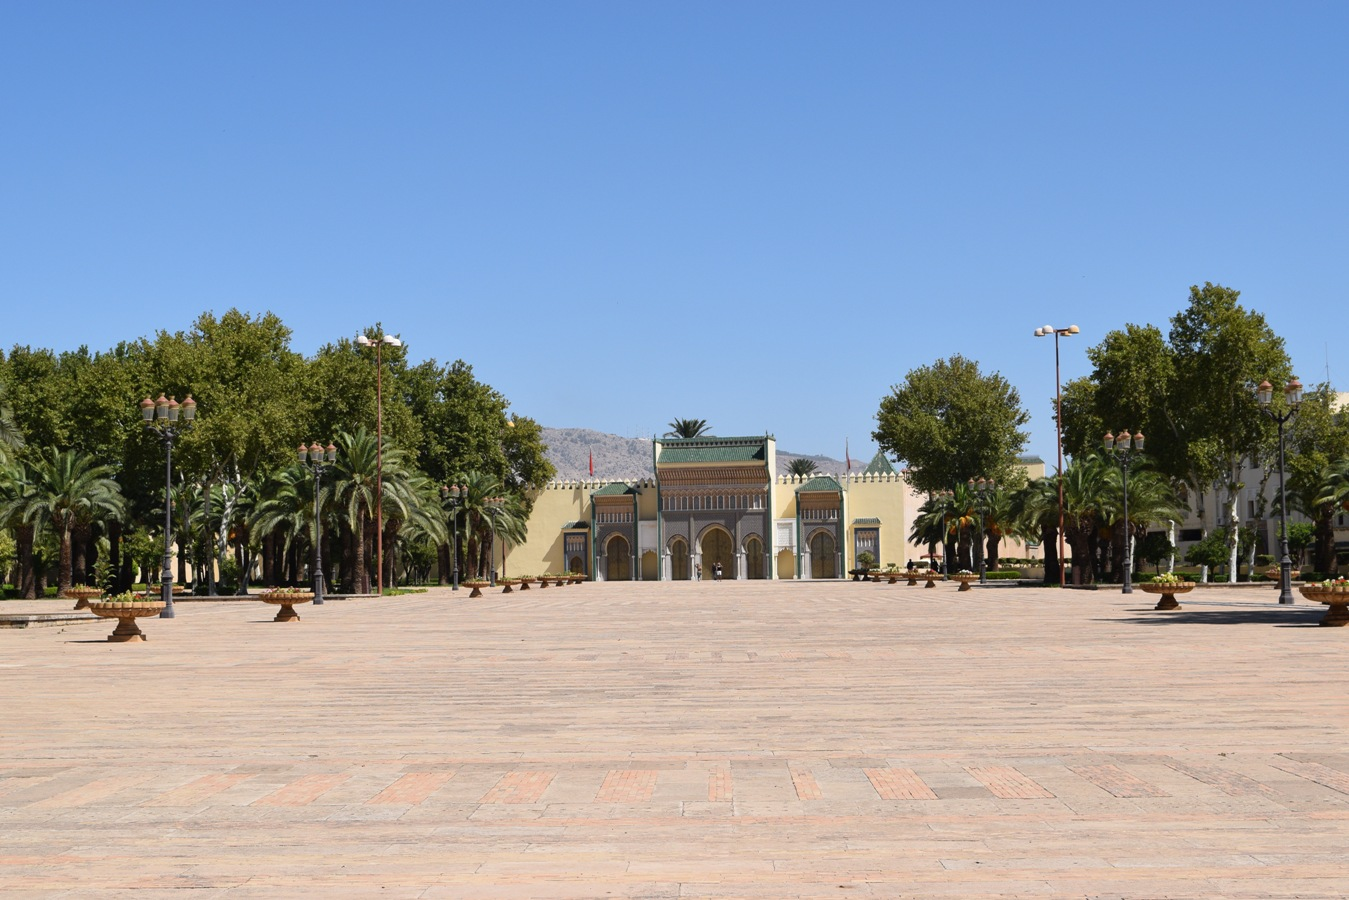 Visiting Fez, Morocco with a tour guide | The Cheerful Wanderer